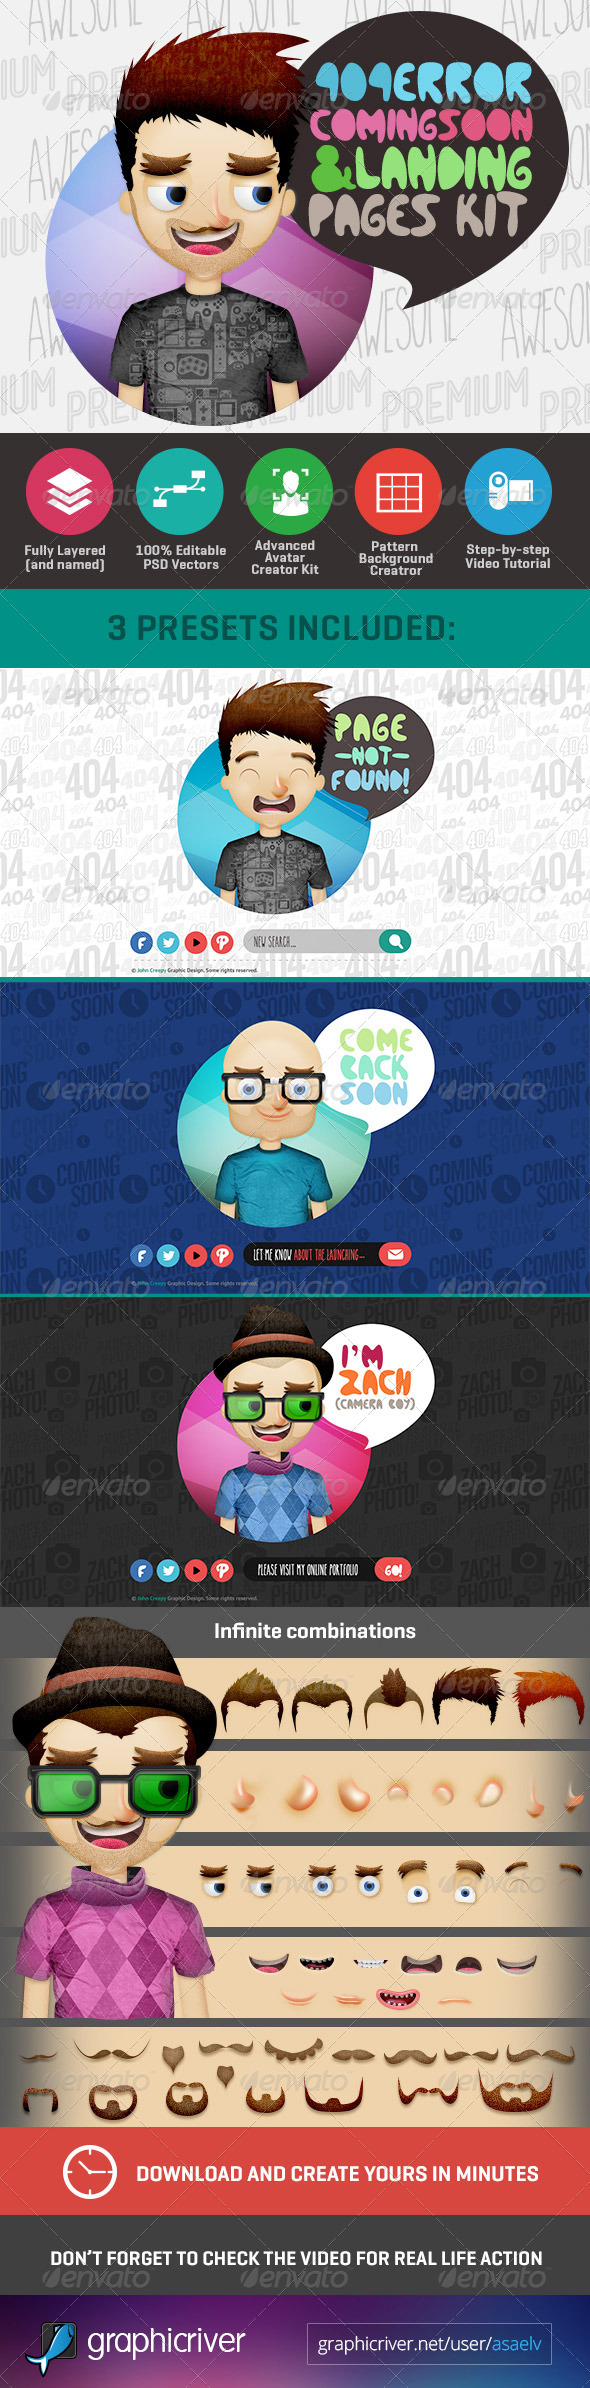 GraphicRiver 404 Page with Avatar Creator Kit 6853253